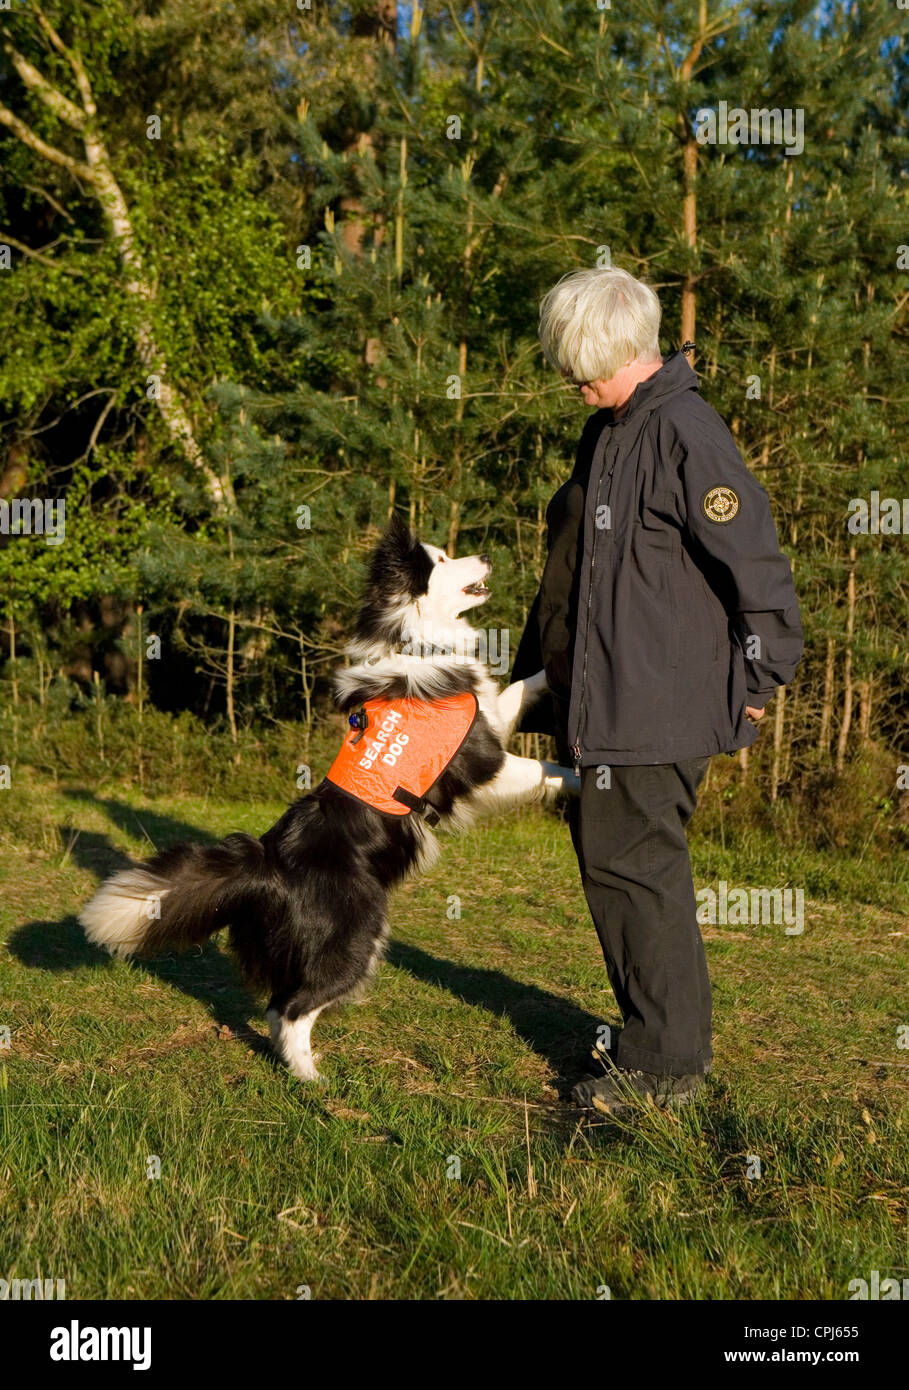 Search and Rescue Dog Single adult alerting owner UK - Stock Image